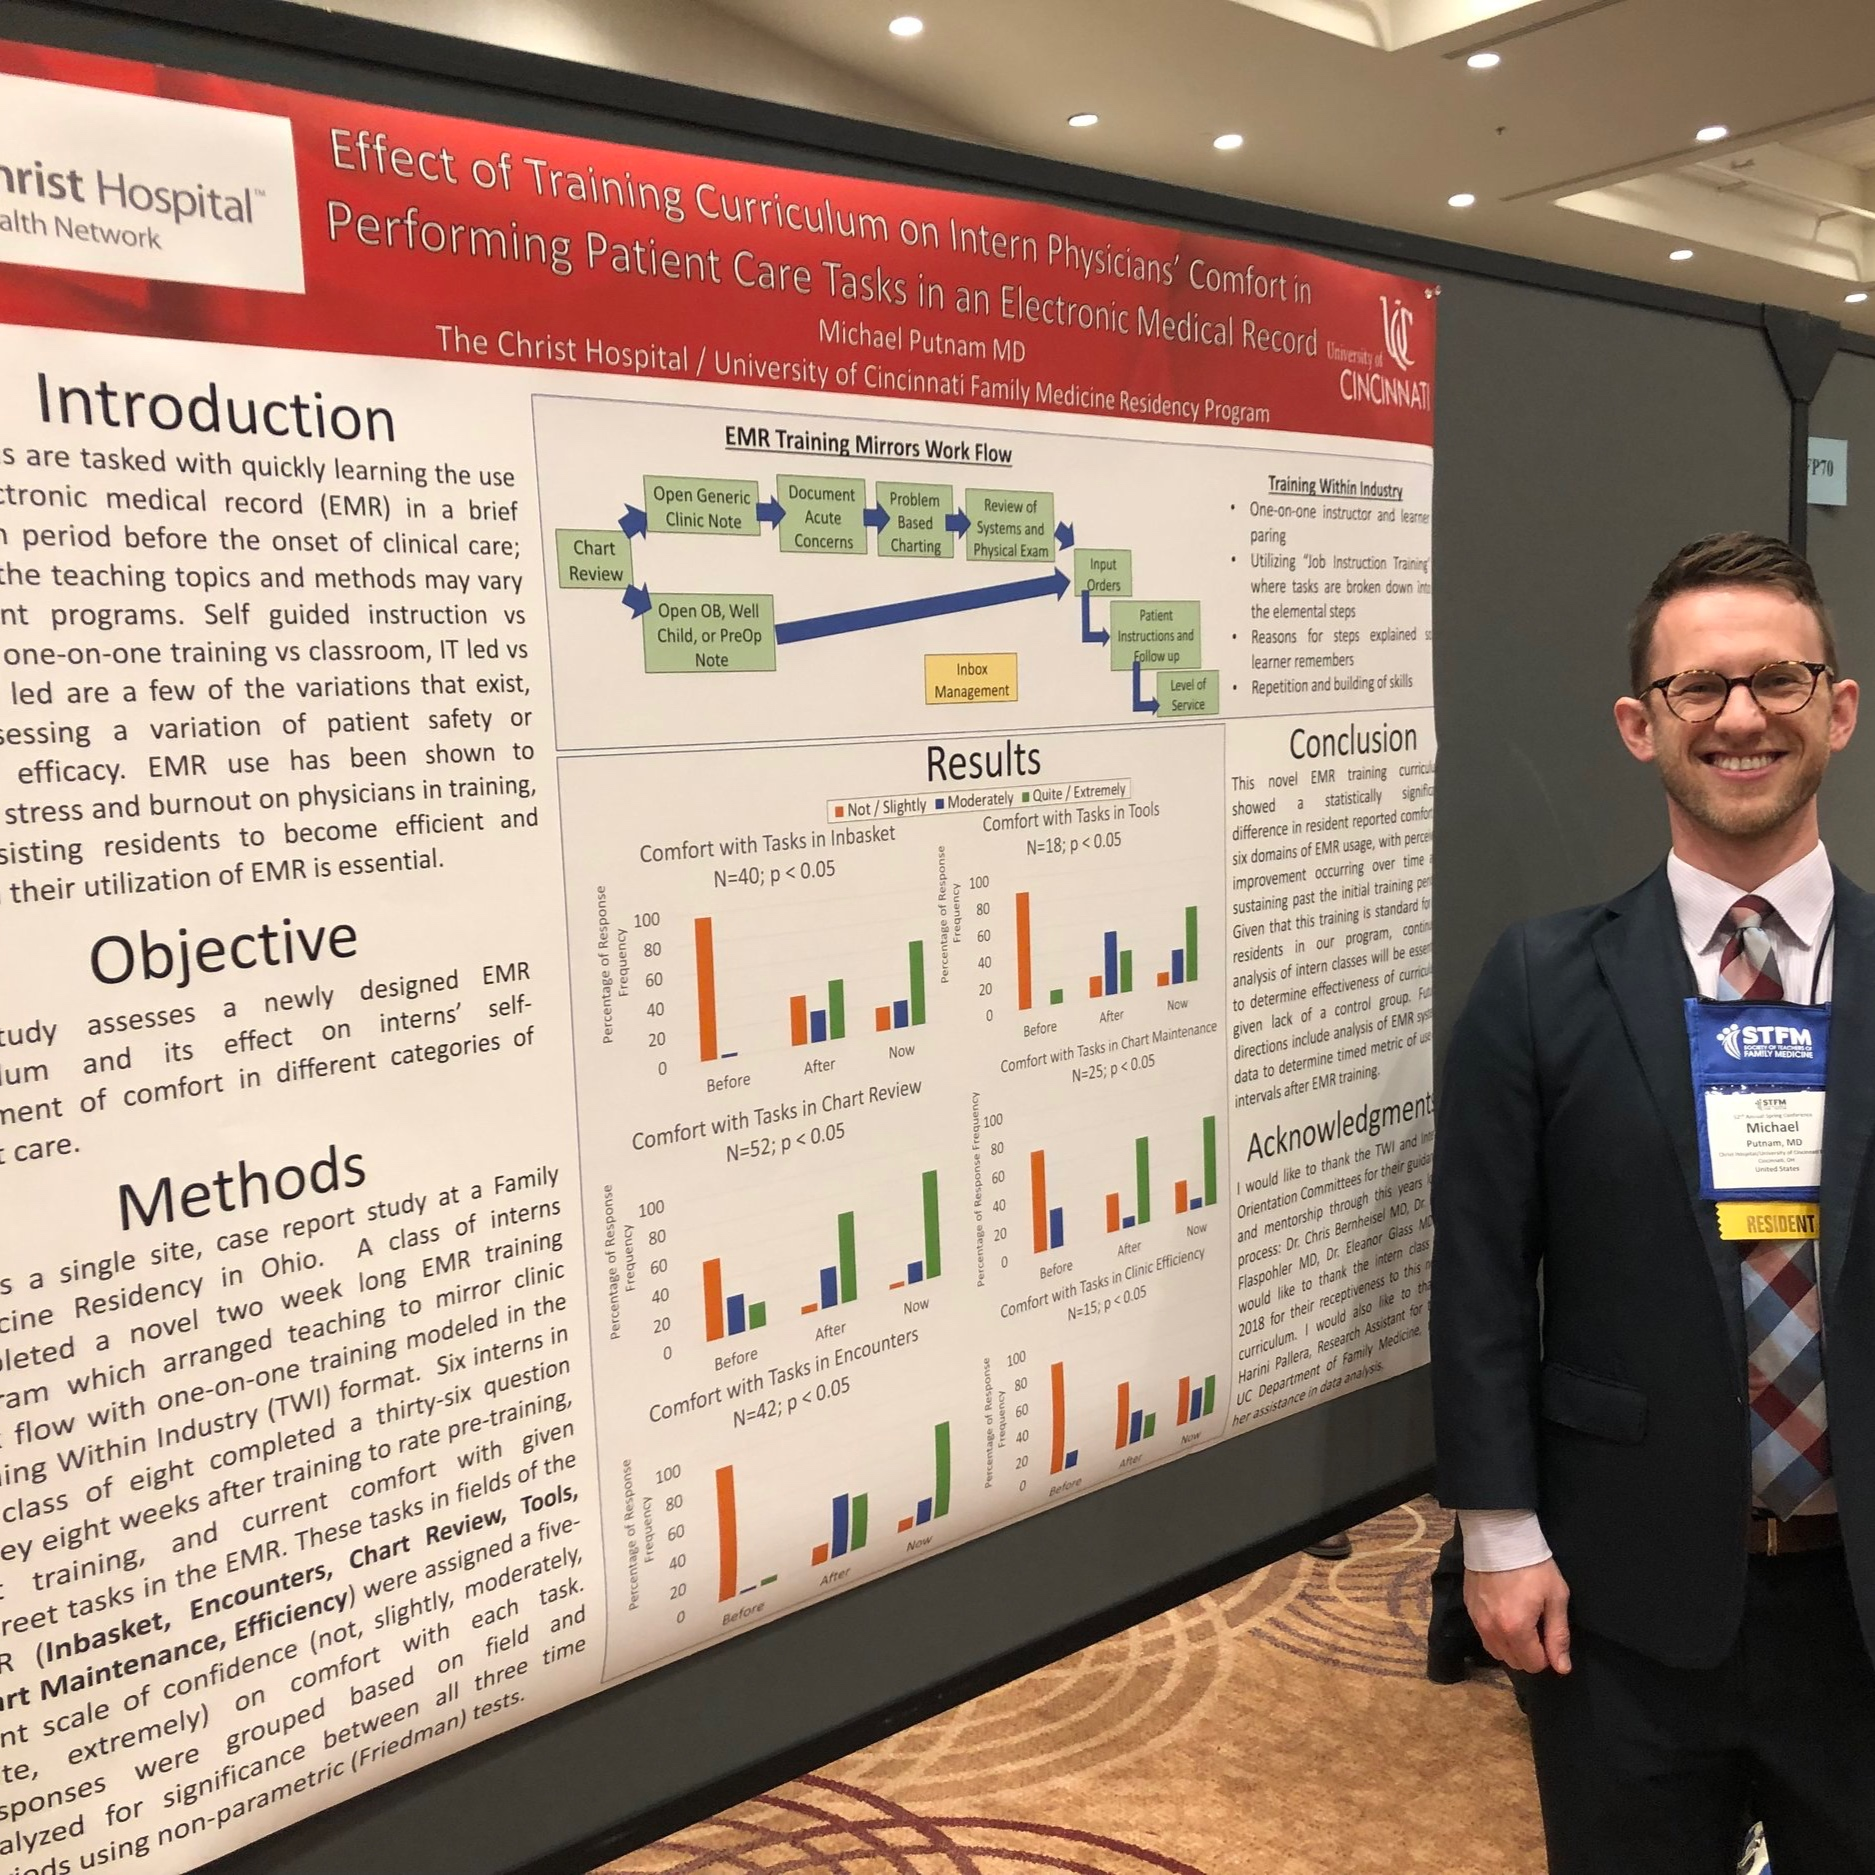 Dr. Michael Putnam  presents (a solo poster!) on his work to help interns feel more comfortable adjusting to the EMR life- one of the many posters and presentations at  STFM  this year.